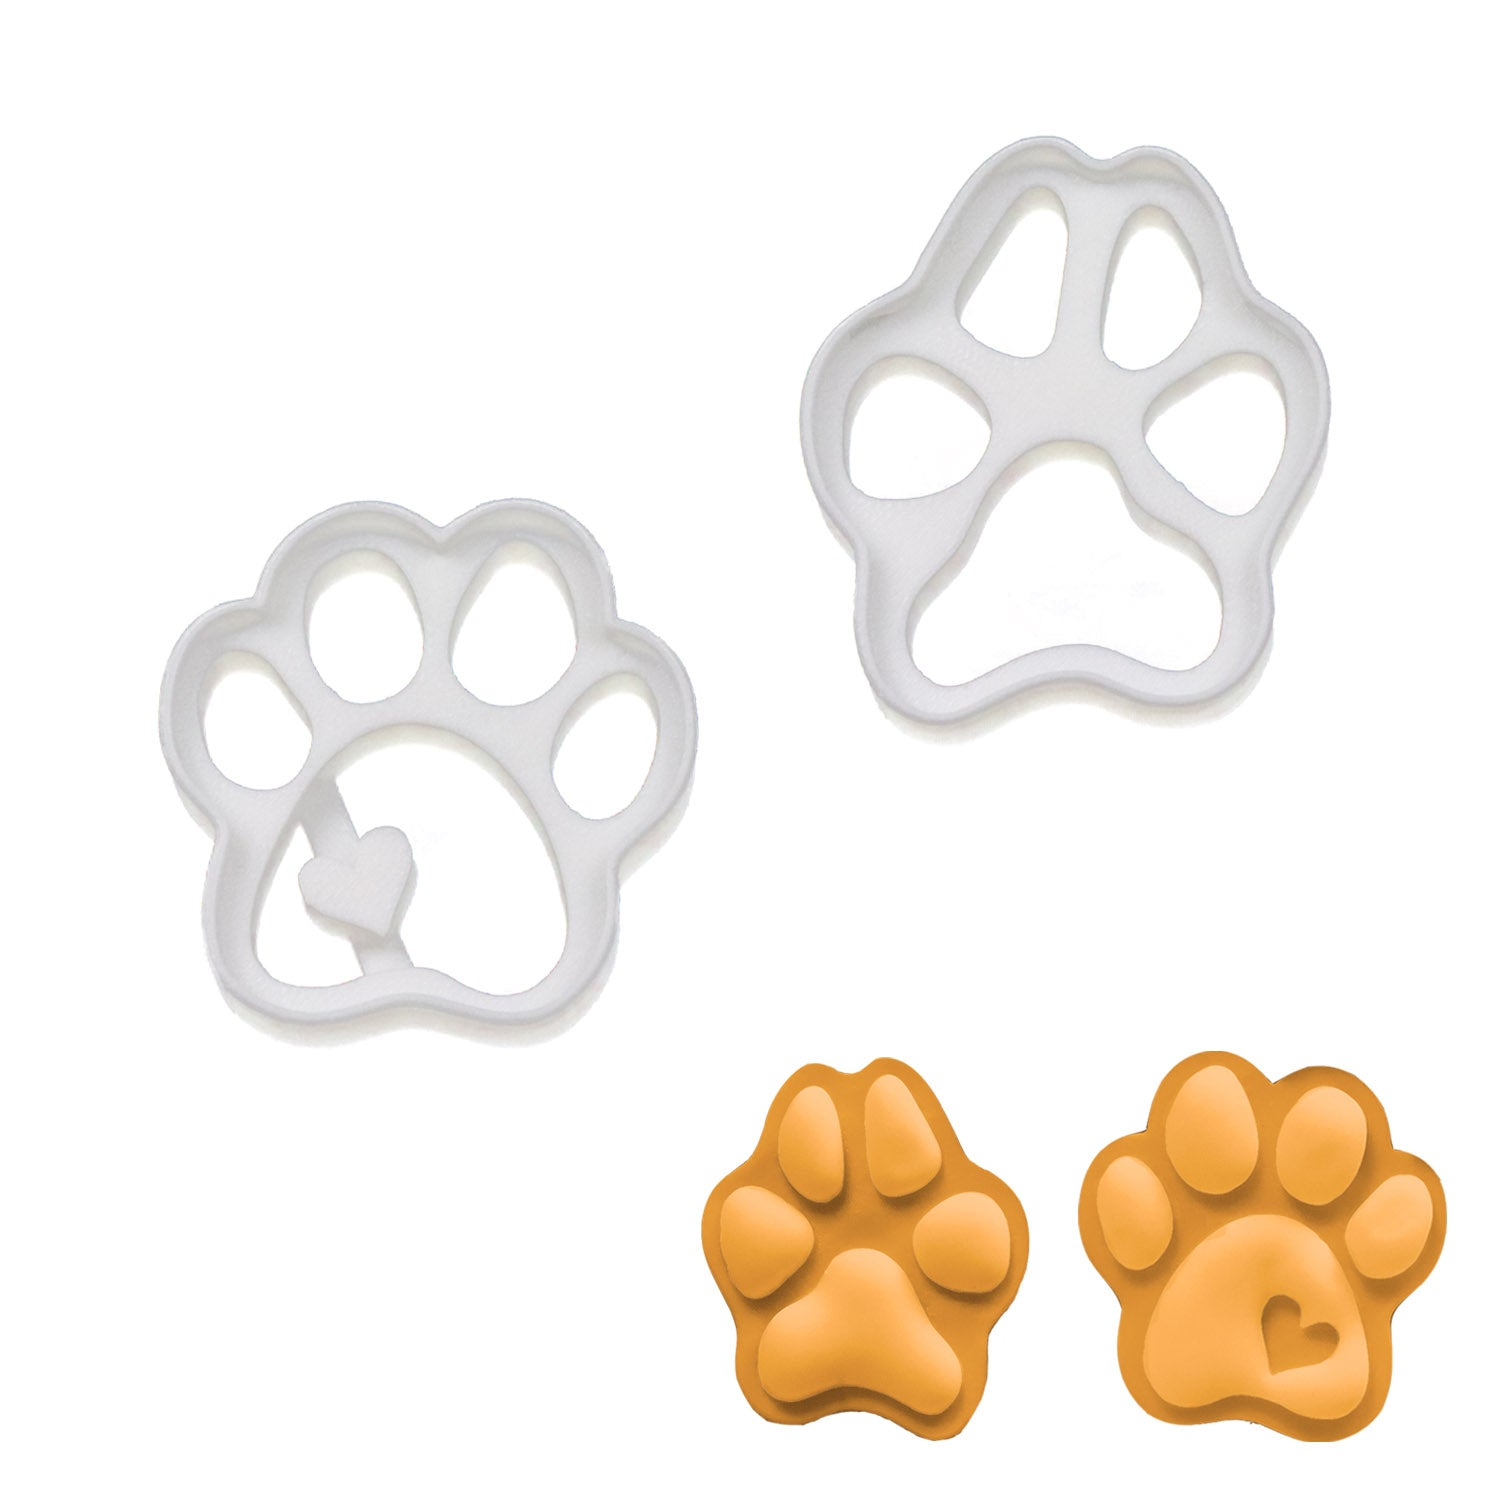 Small cute and realistic dog paw cookie cutters